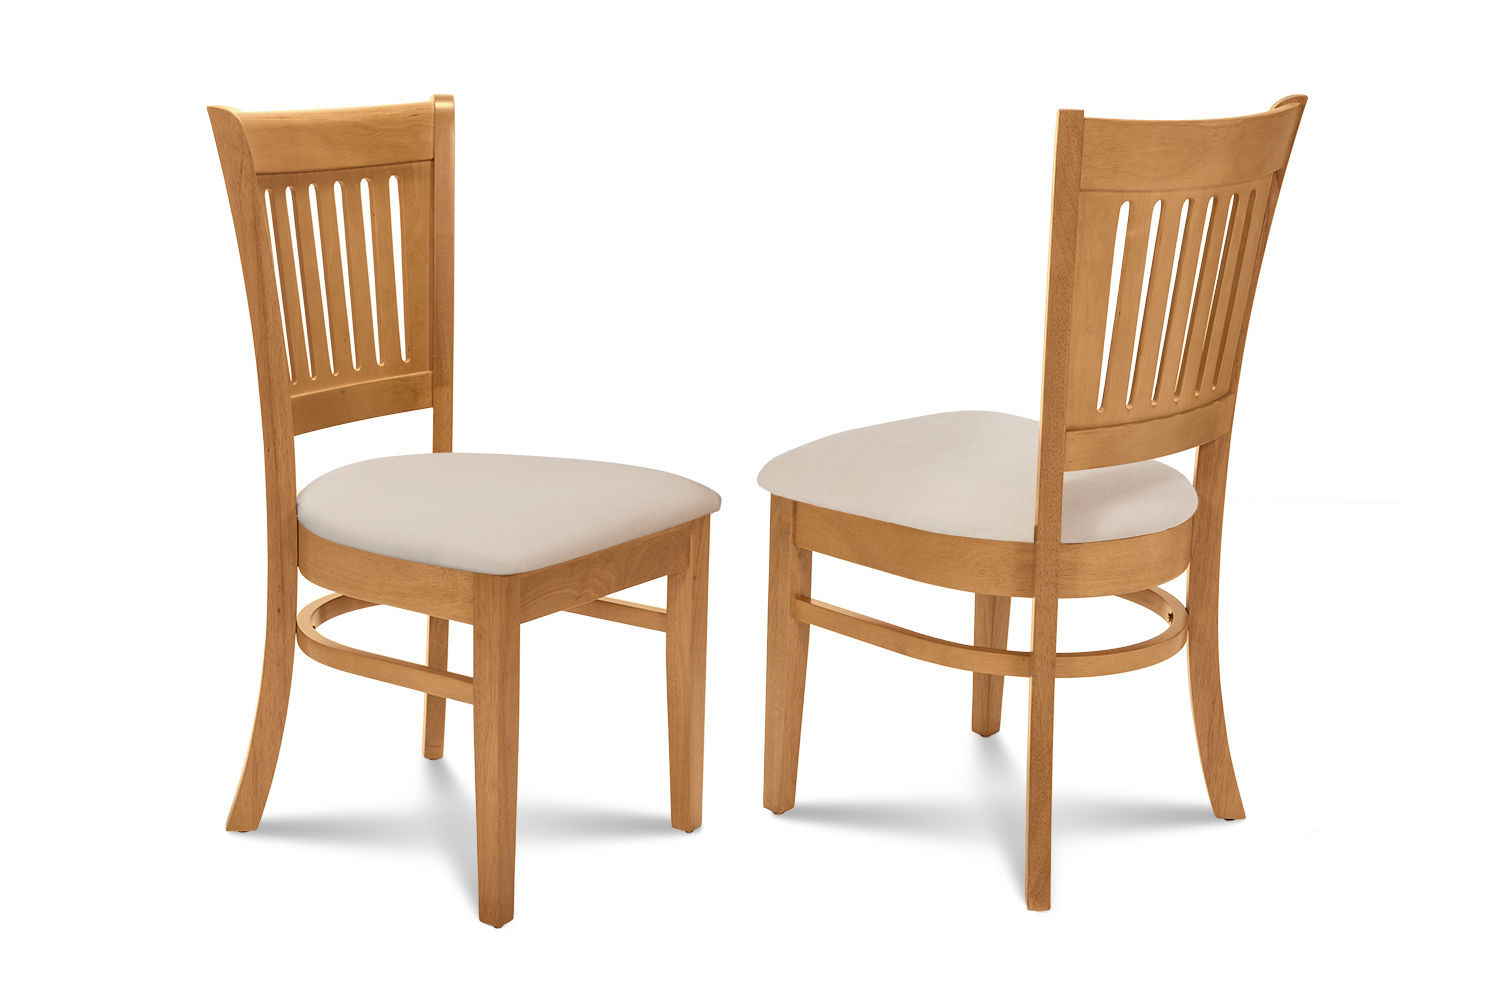 SET OF 4 DINING KITCHEN DINETTE SIDE CHAIRS w/ CUSHIONED SEATS IN OAK FINISH